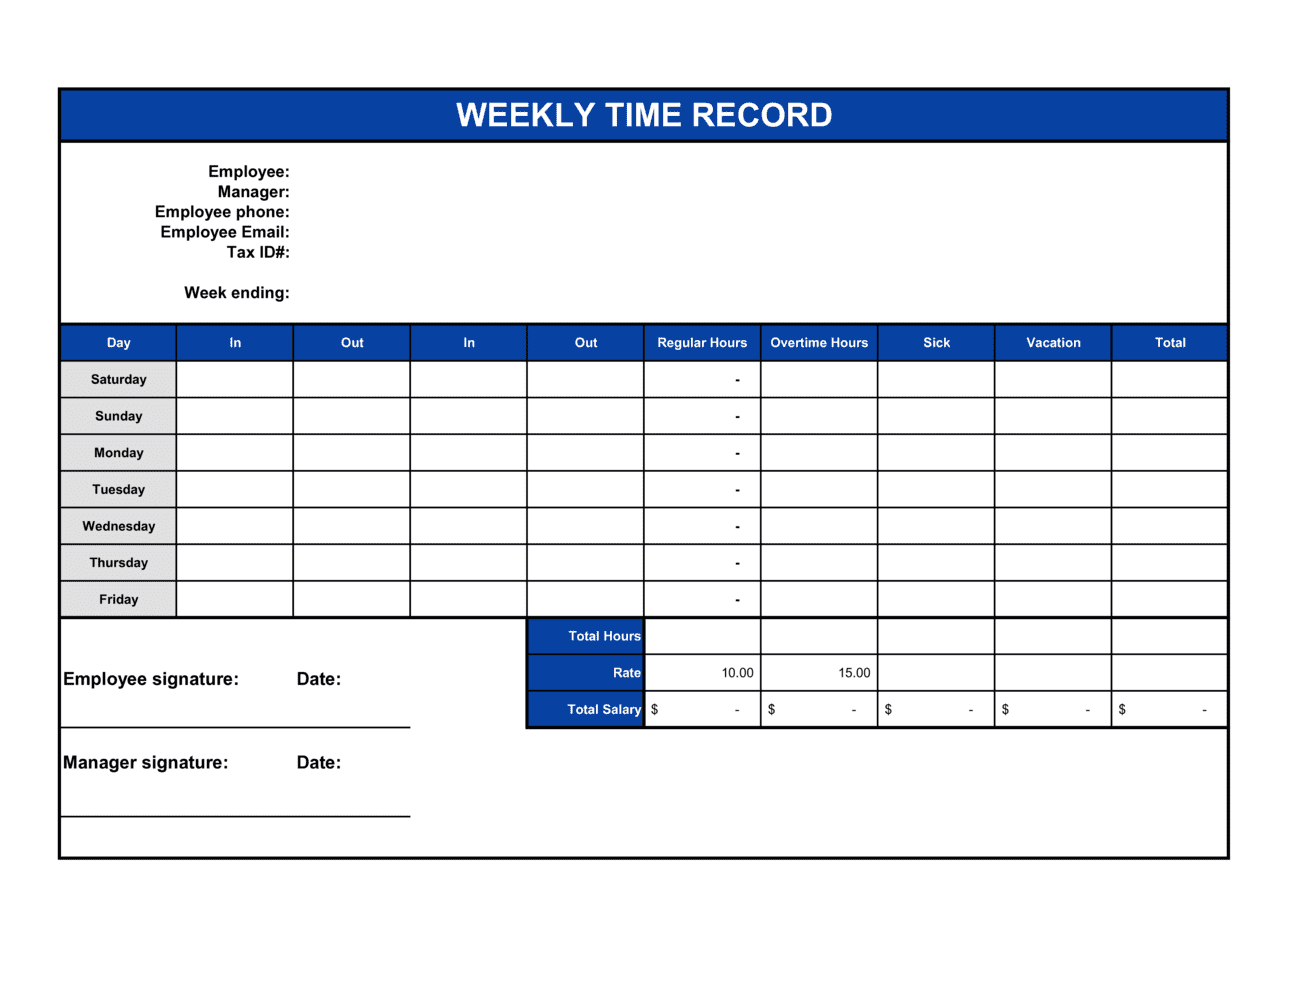 Business-in-a-Box's Time Sheet Template